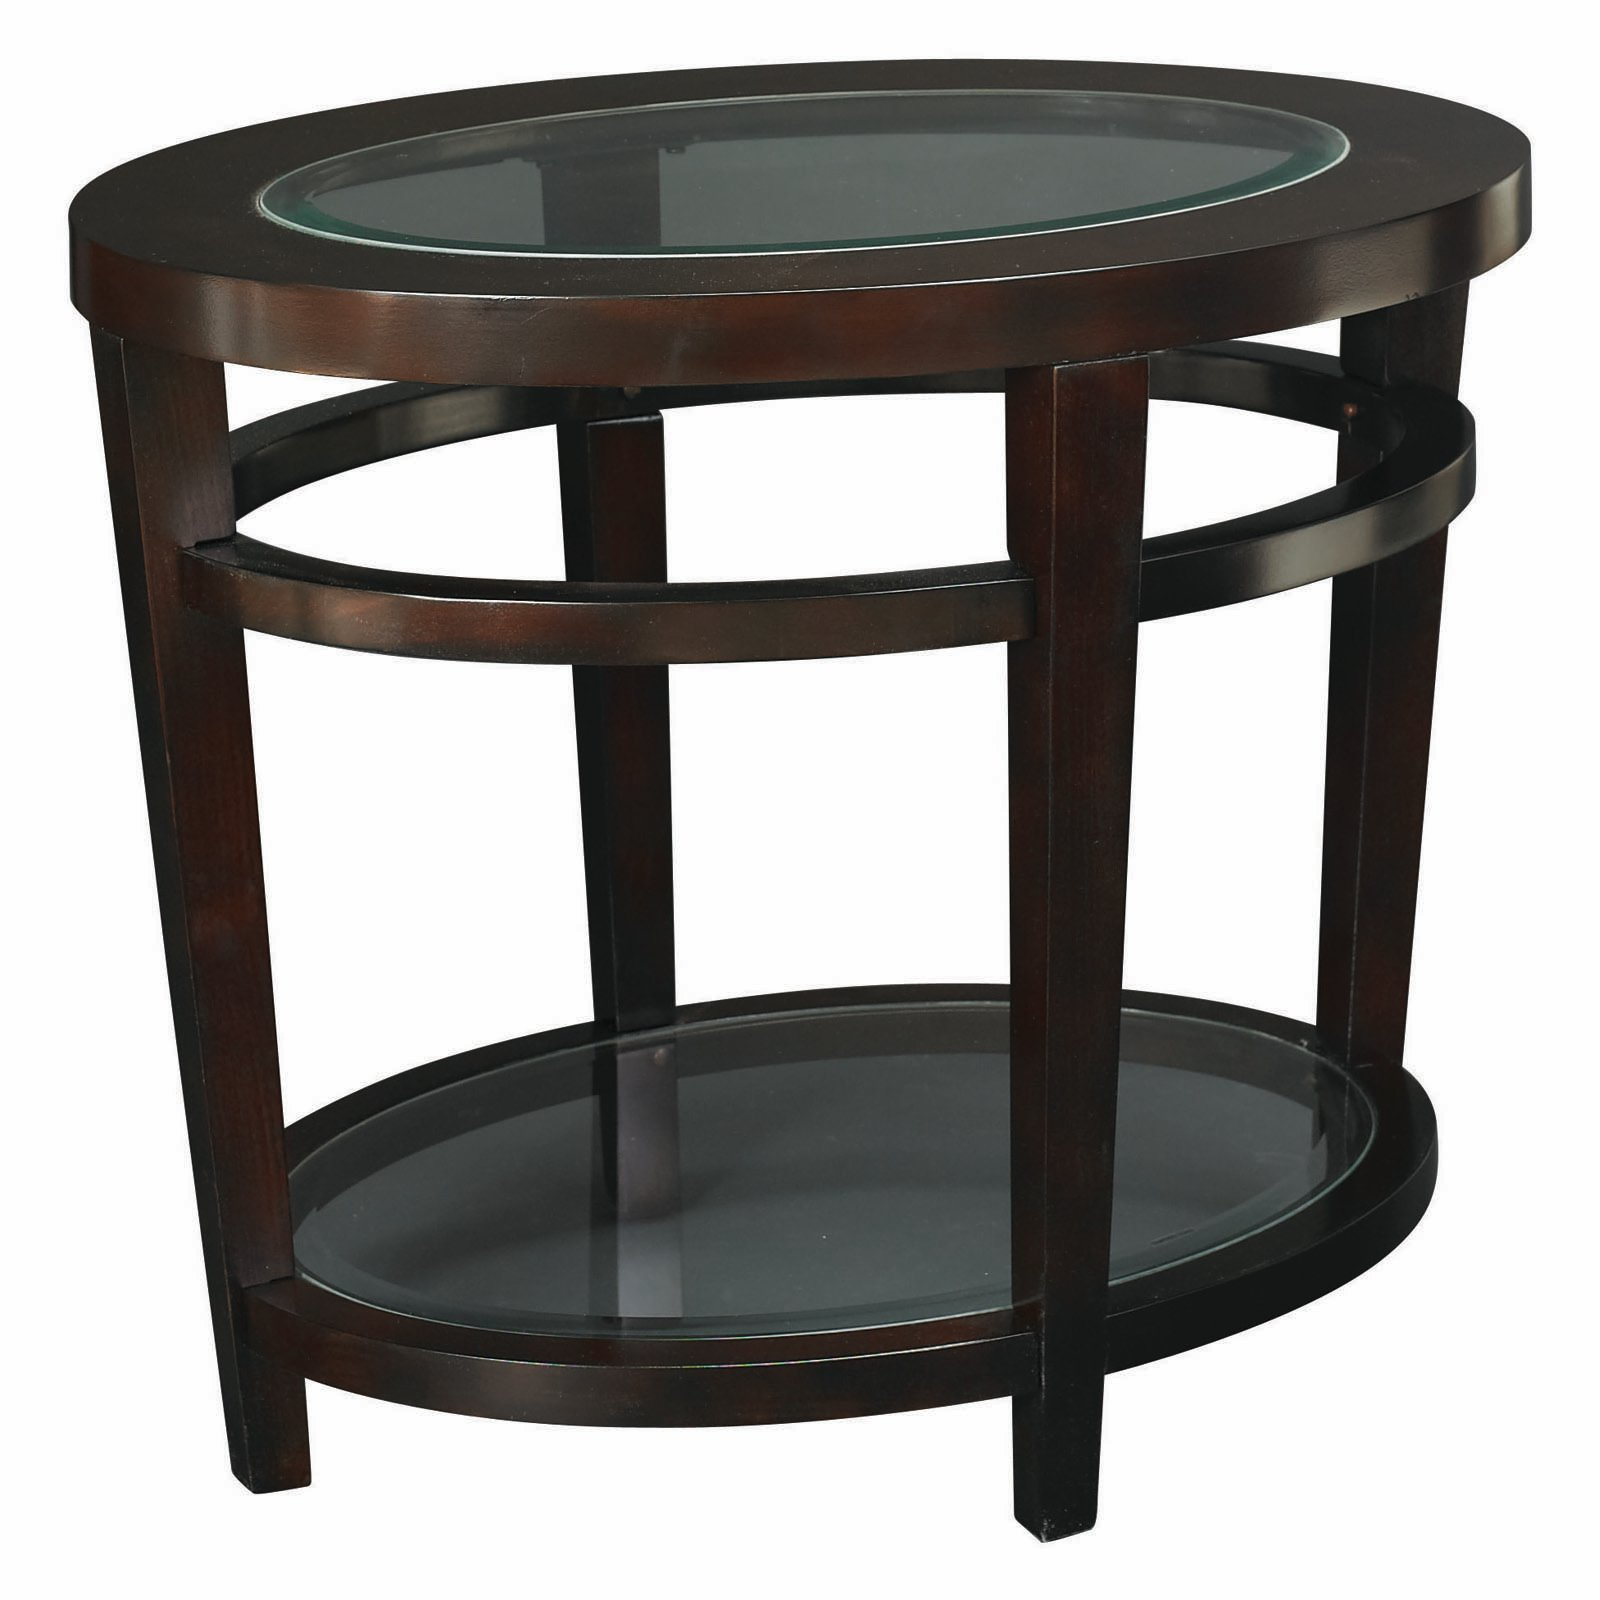 small patio furniture sets probably super free round side table hammary mercantile adjustable accent master bath and beyond stickley coat rack bench closet shoe dining tables